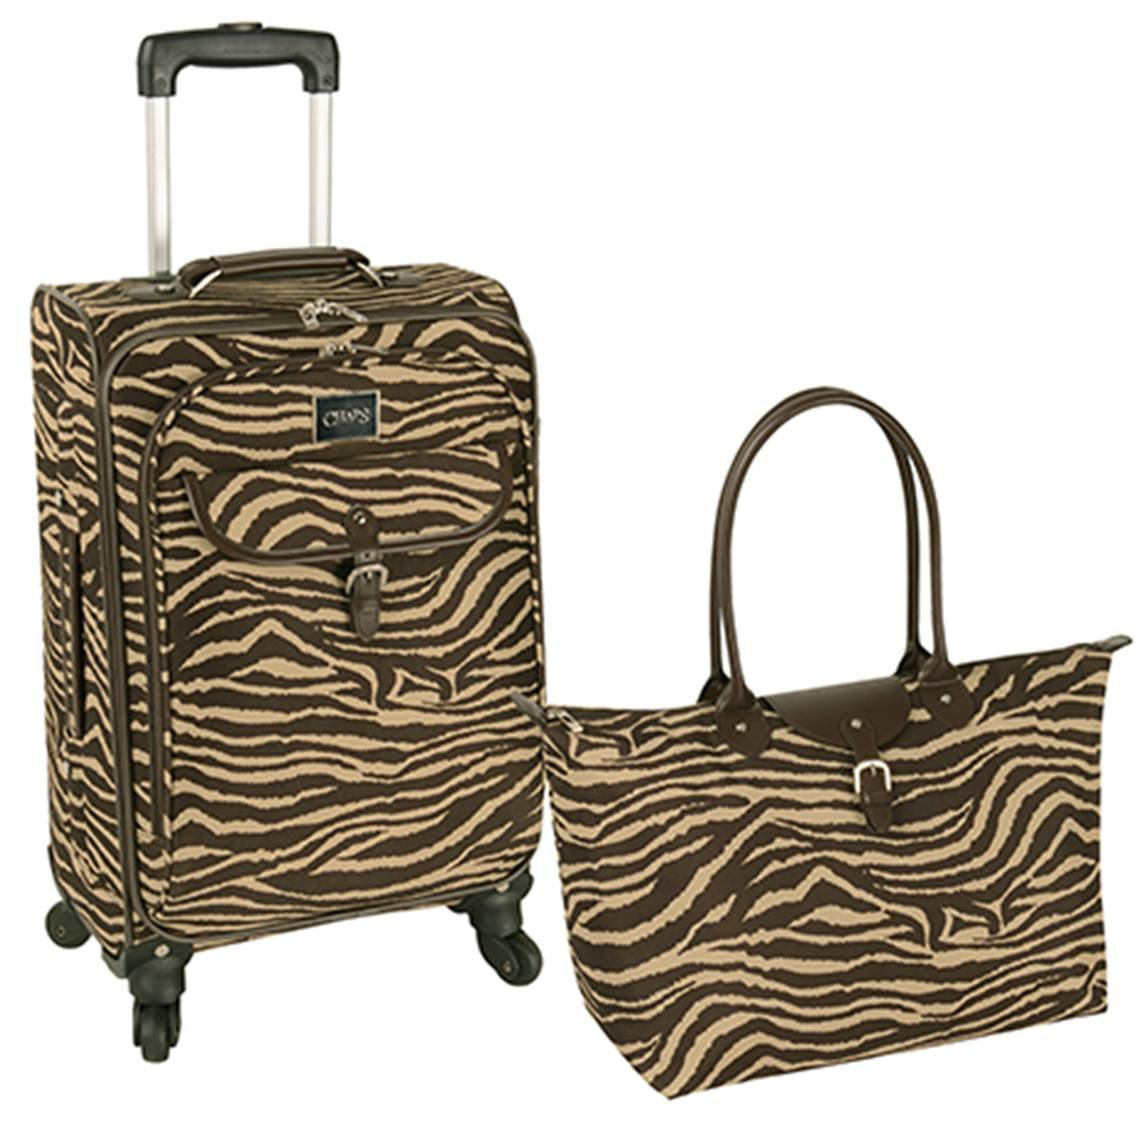 Amazon.com: 2 Pc Chaps Women's Fairhaven Luggage Set, 20